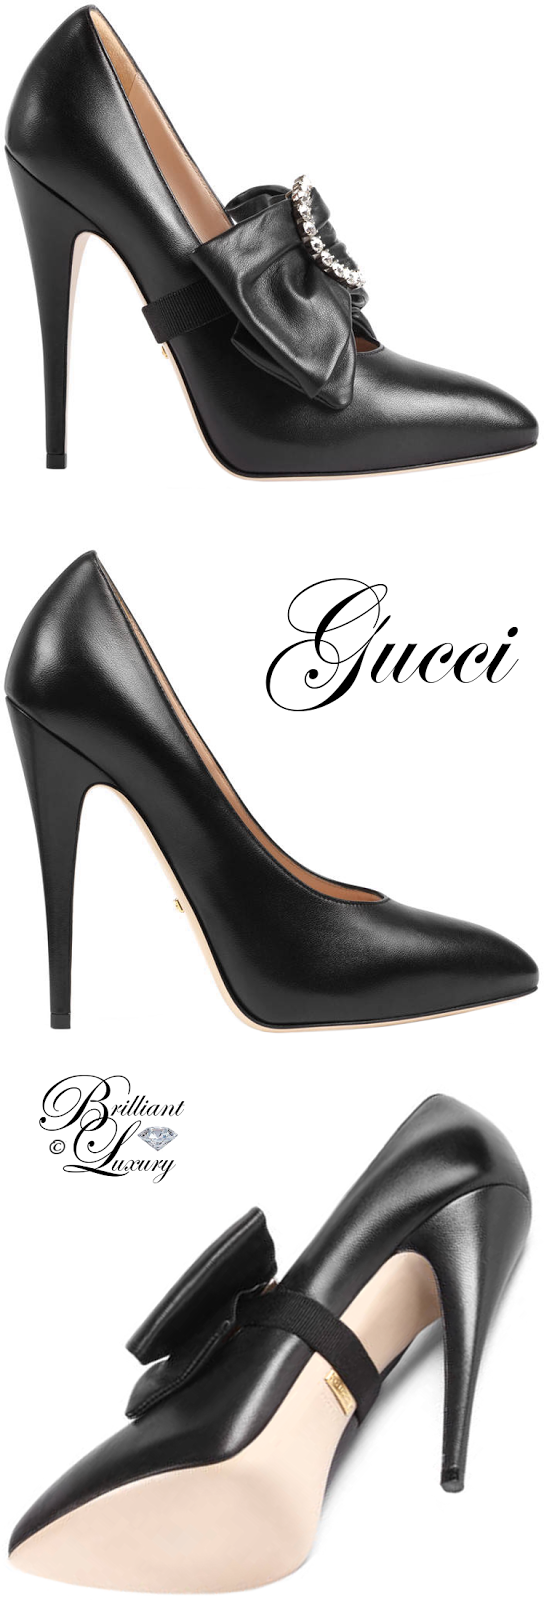 85cdb377736a Brilliant Luxury ♢ Gucci Leather pump with removable leather bow